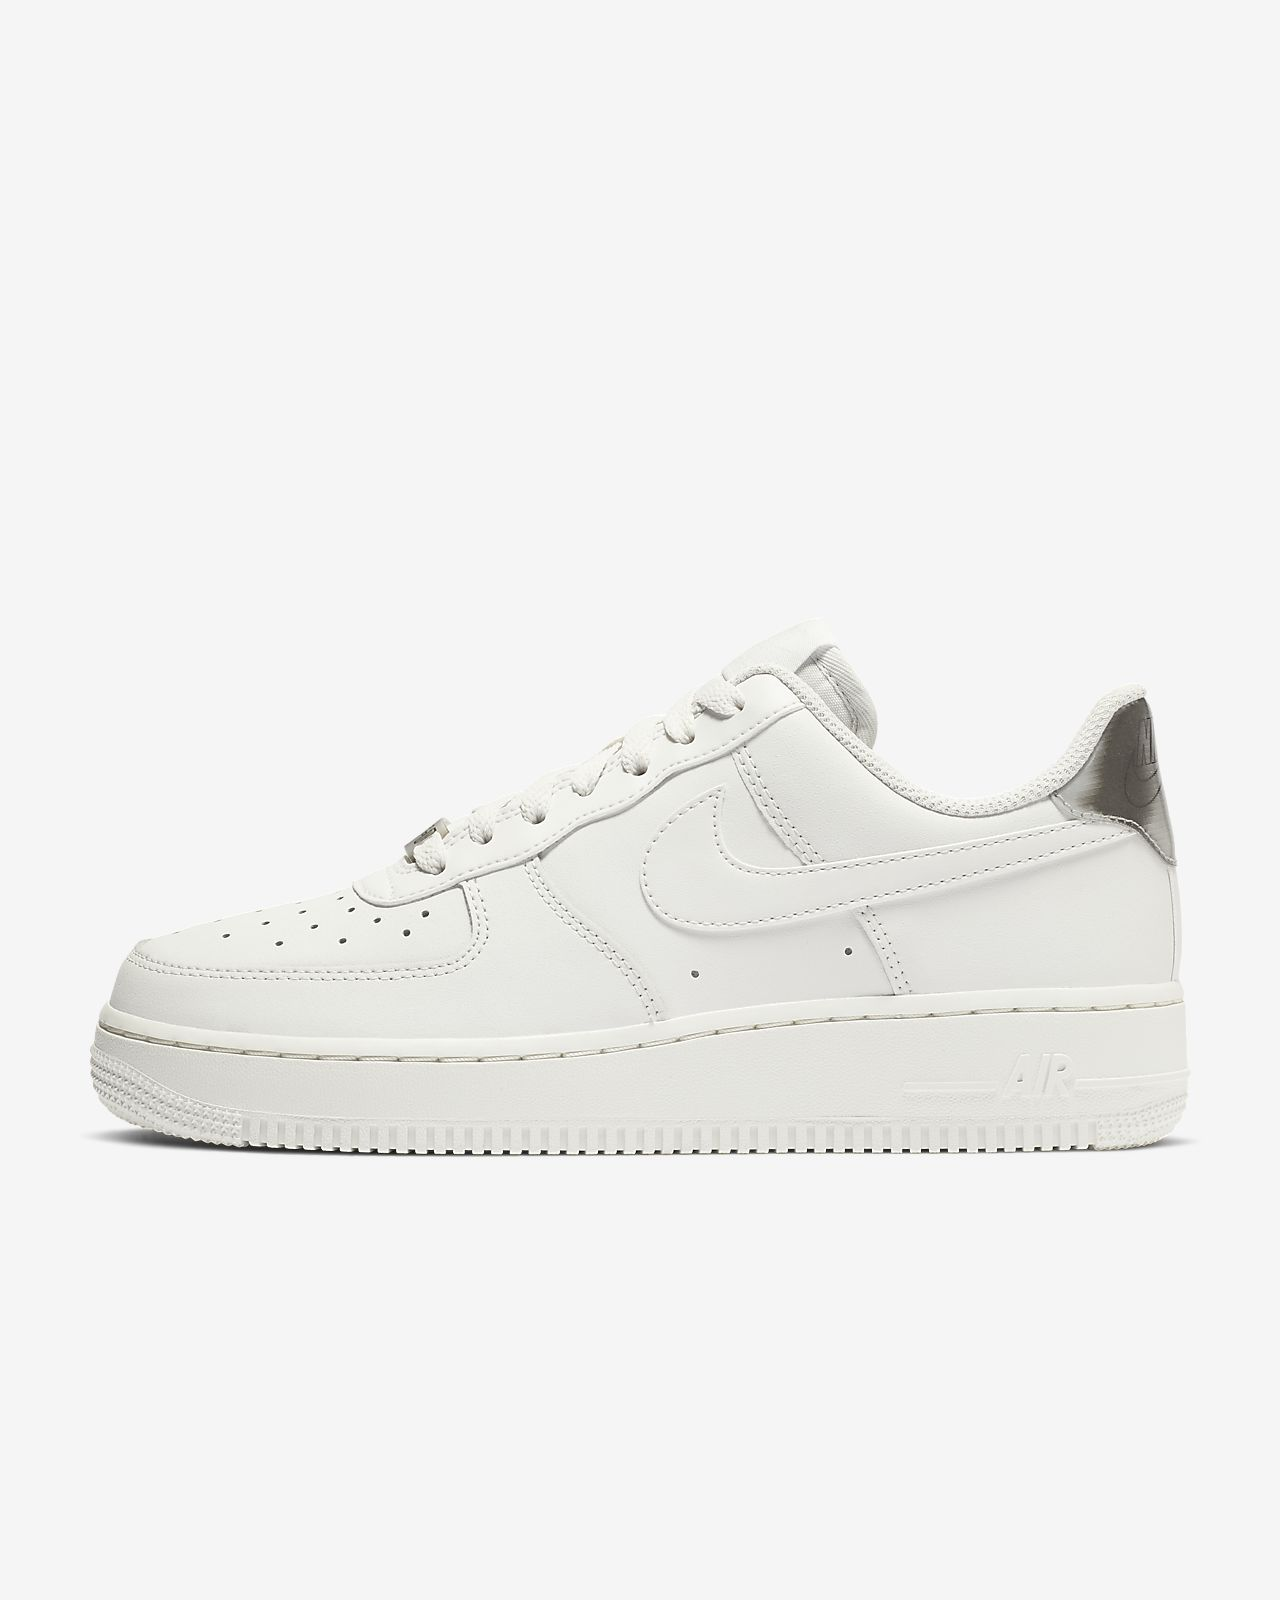 32f4e8ac2844 Nike Air Force 1  07 Essential Women s Shoe. Nike.com GB